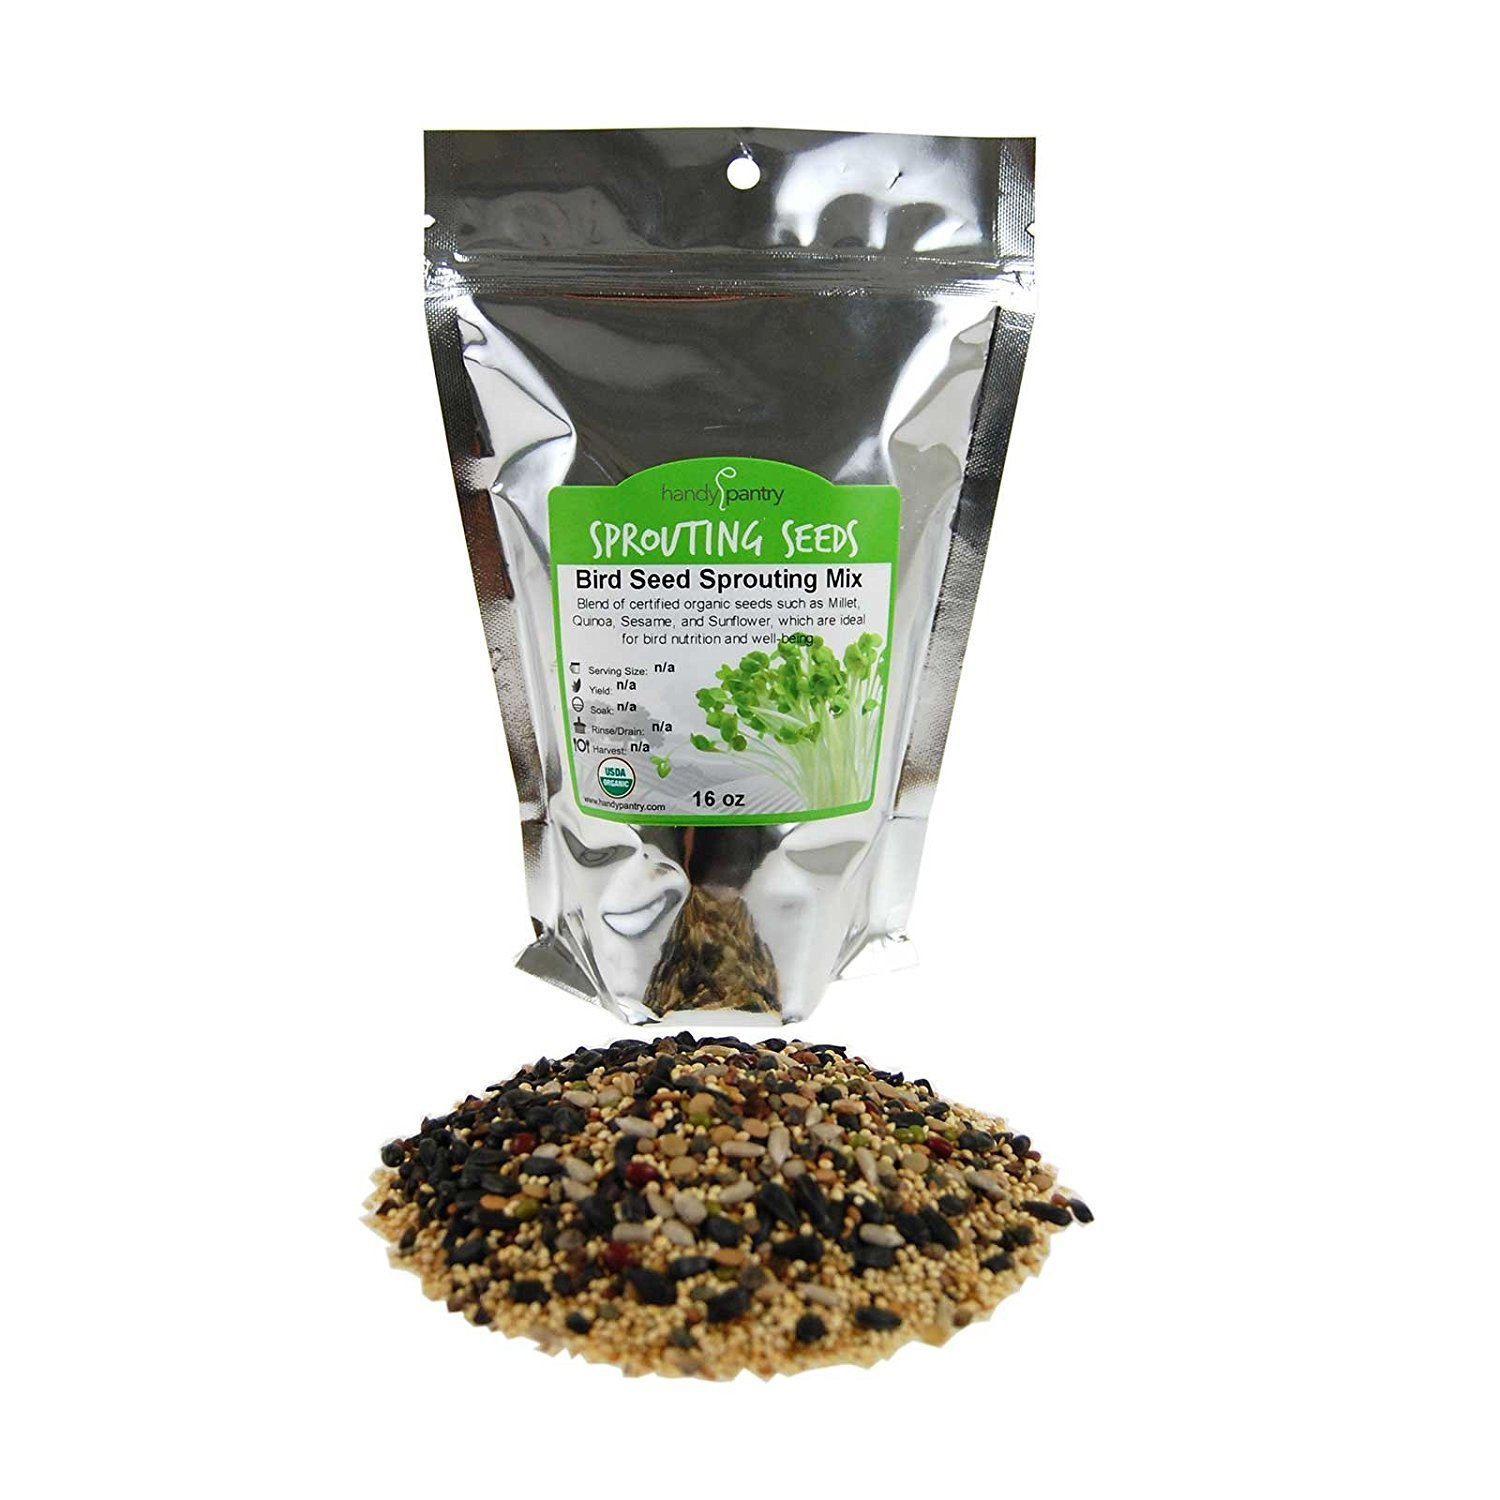 Organic Birdseed1 Lbs- Bird Seed Mix for Small, Medium & Large Birds- Feed for Songbirds, Parakeets, Parreds, etc.